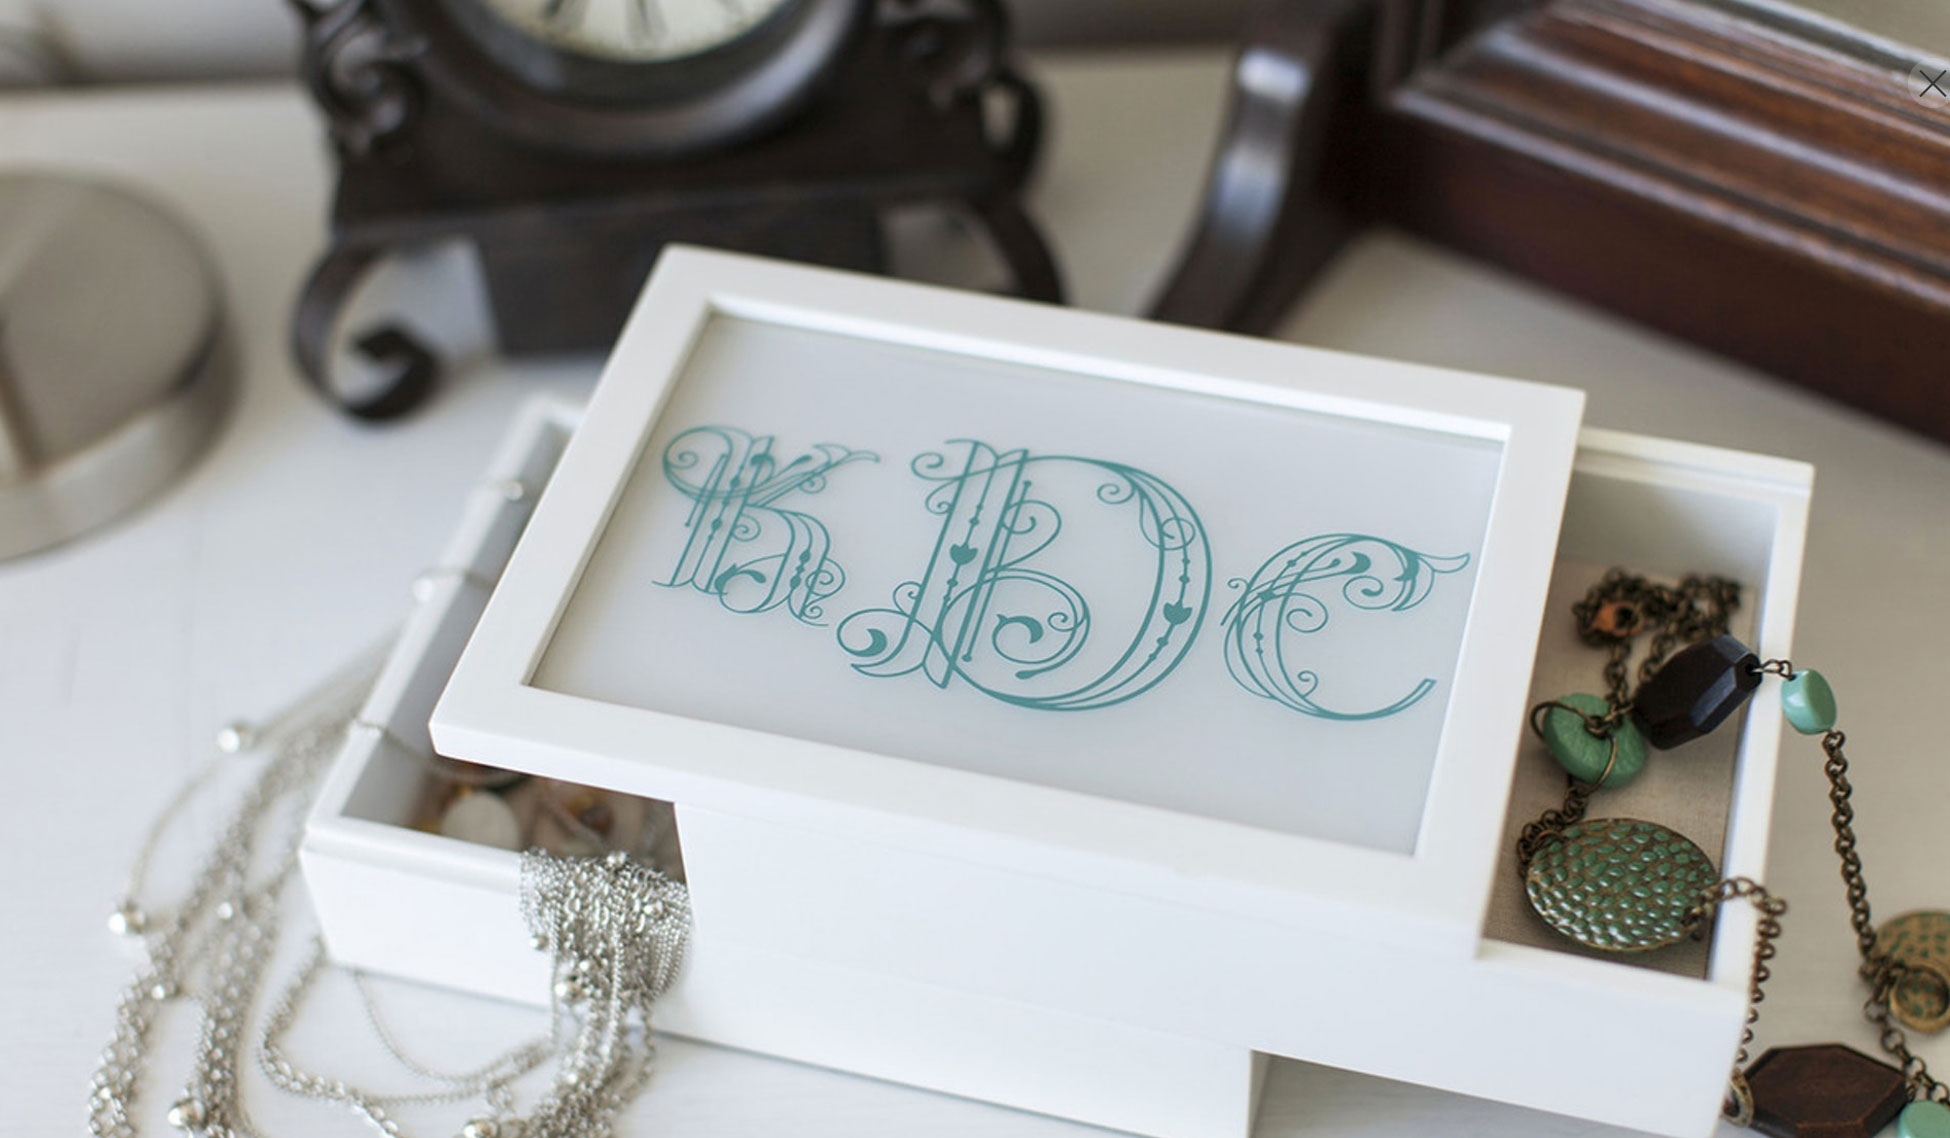 Put a monogram on a jewelry box for your bridesmaids